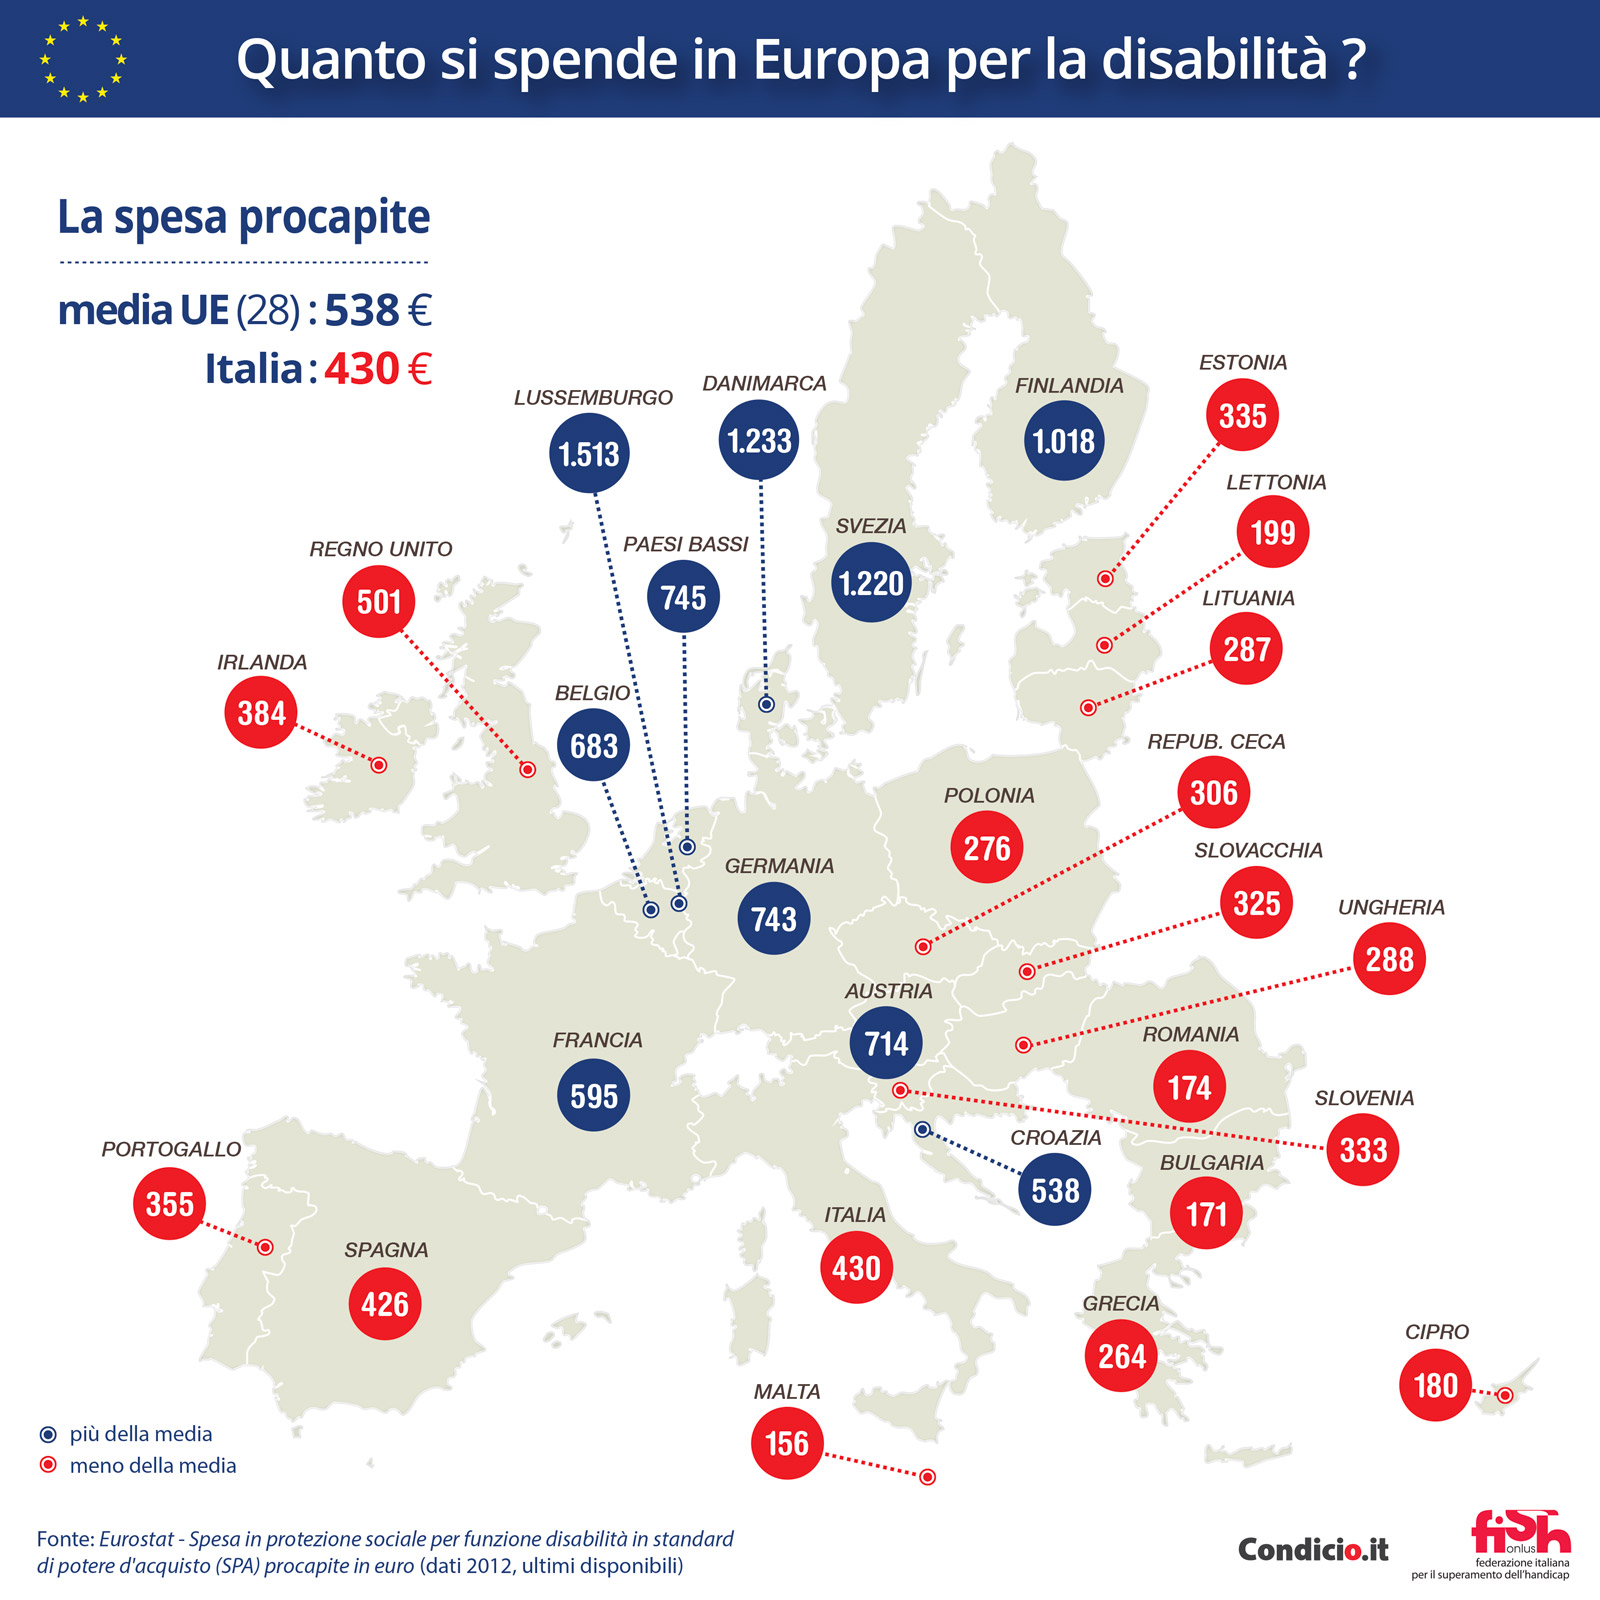 Quanto si spende in Europa per la disabilità?